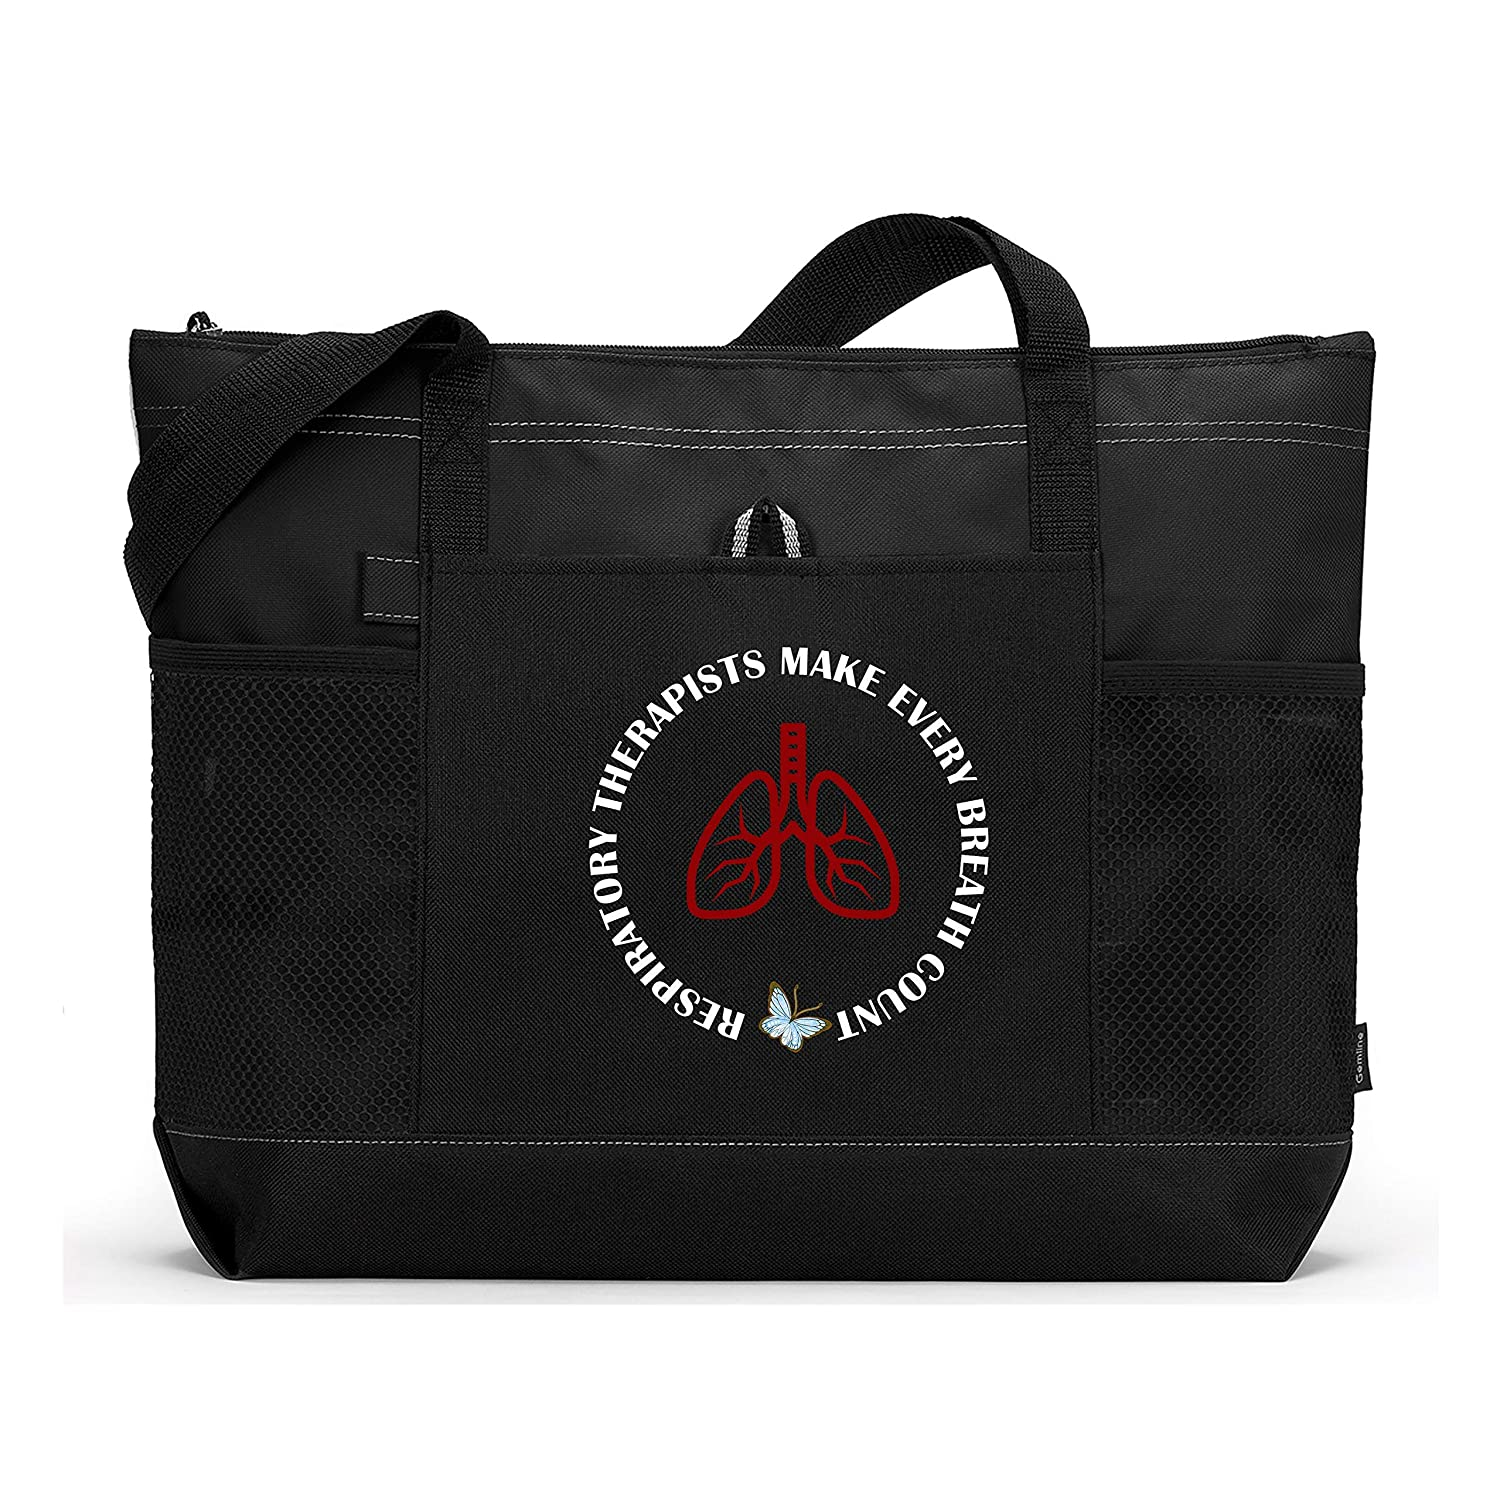 Respiratory Japan Maker New Therapists Make Every Breath Tote Black wi Bag Count Ranking TOP8